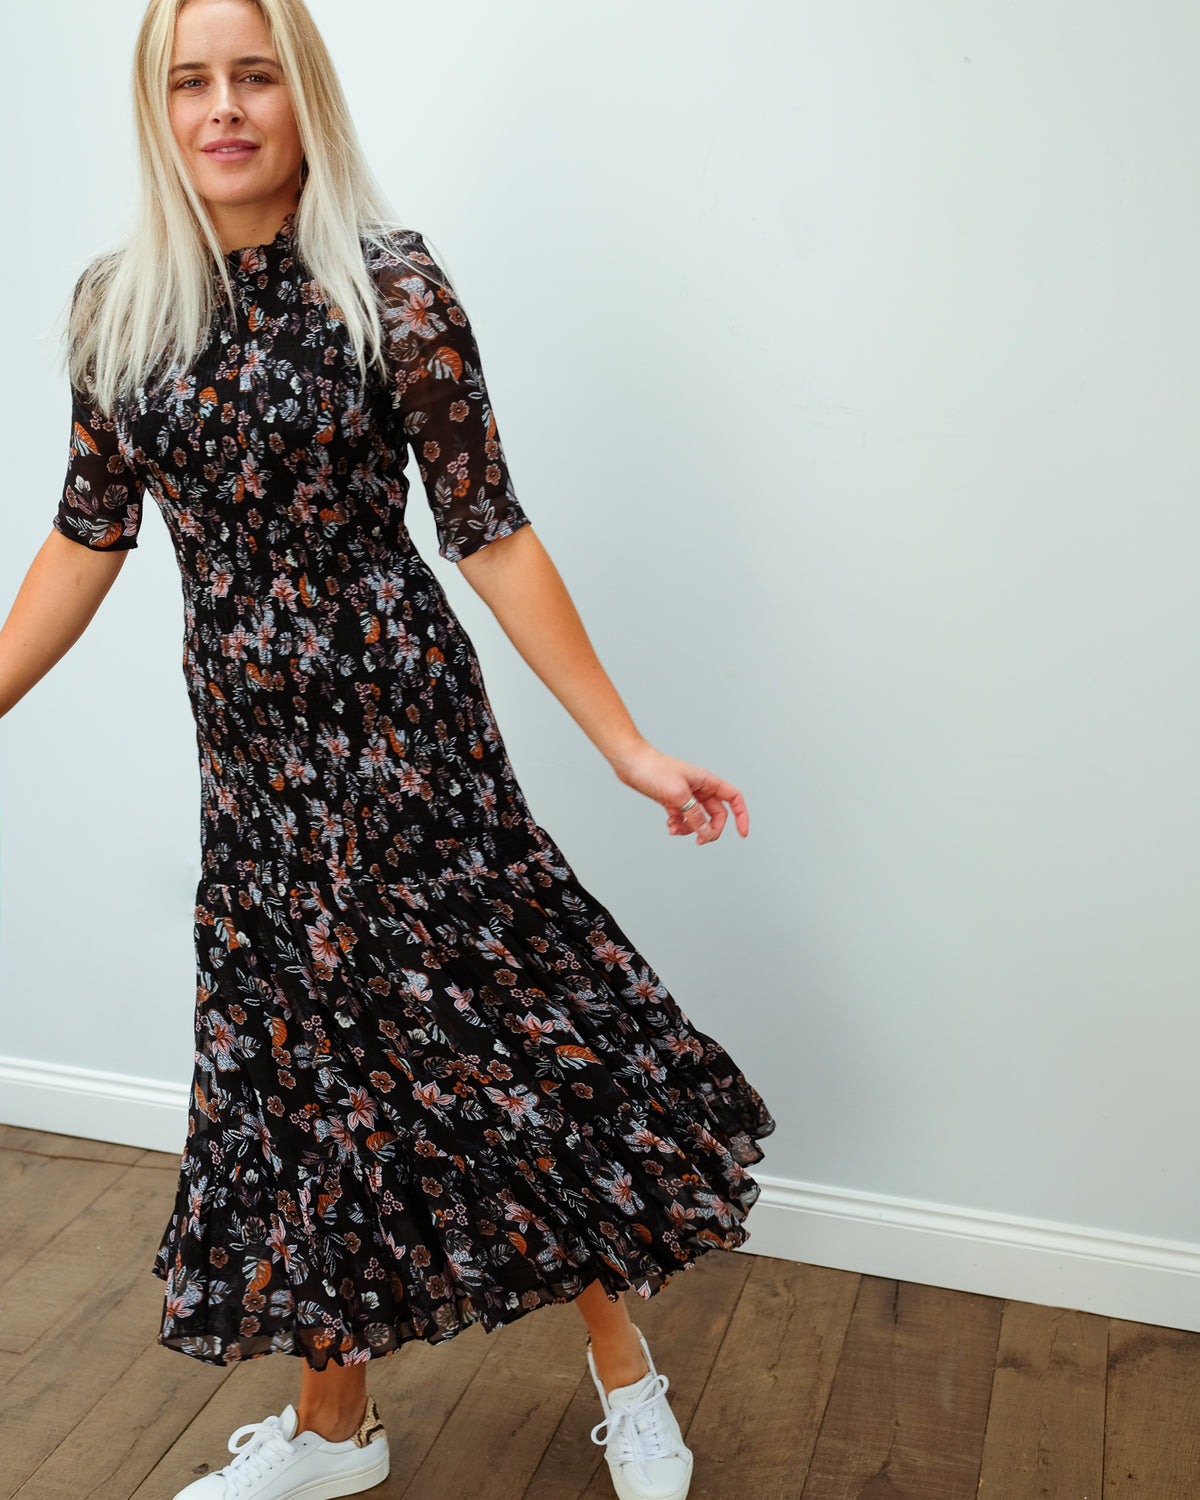 VB Gabi dress in black multi